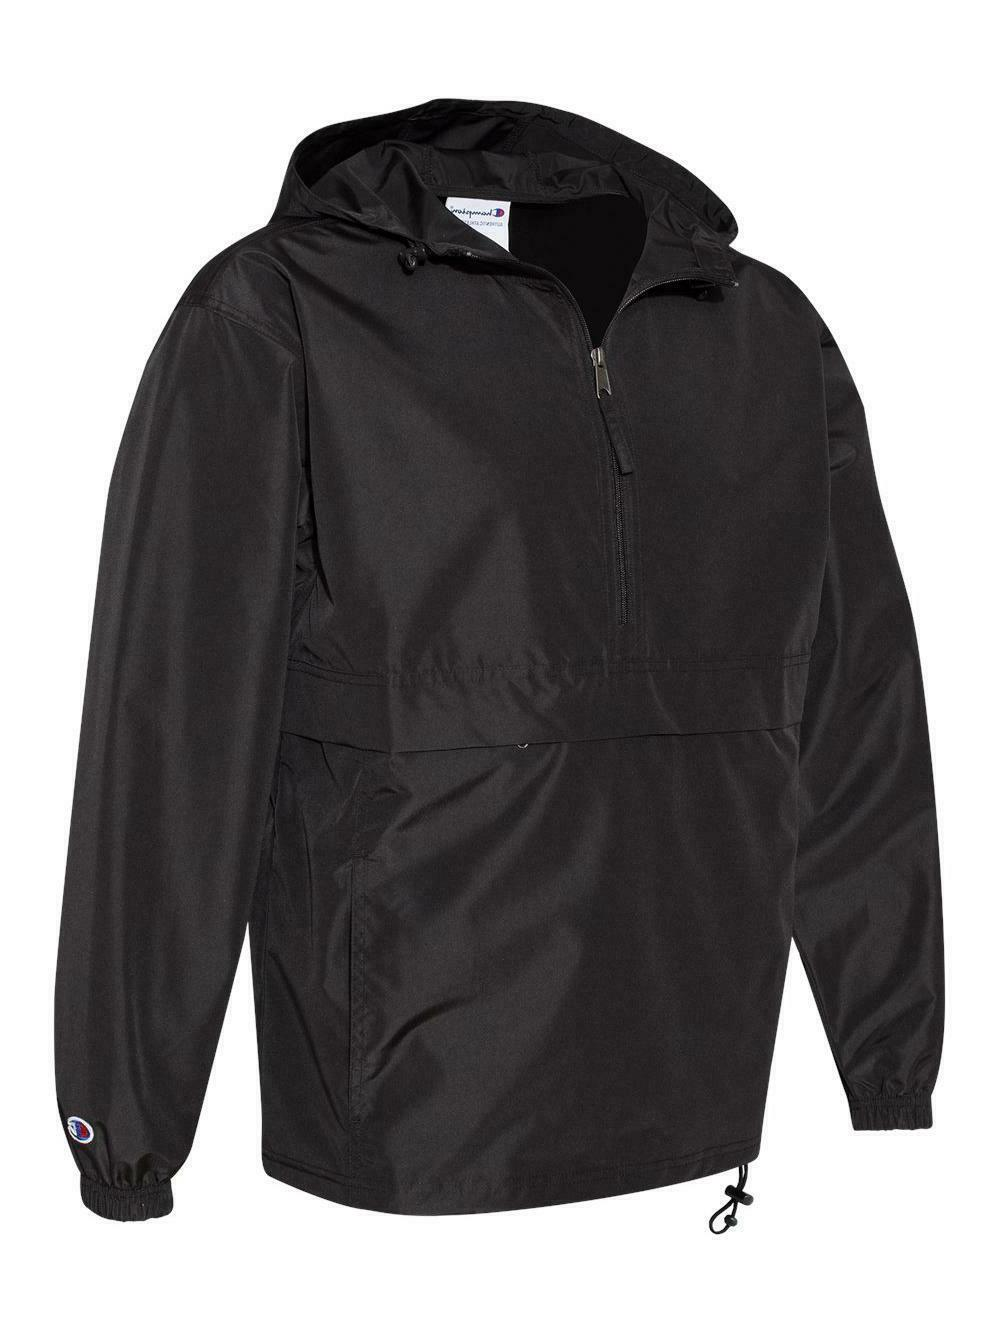 Champion - Anokrak Rain Jacket, 1/4 Zip - Water Resistant